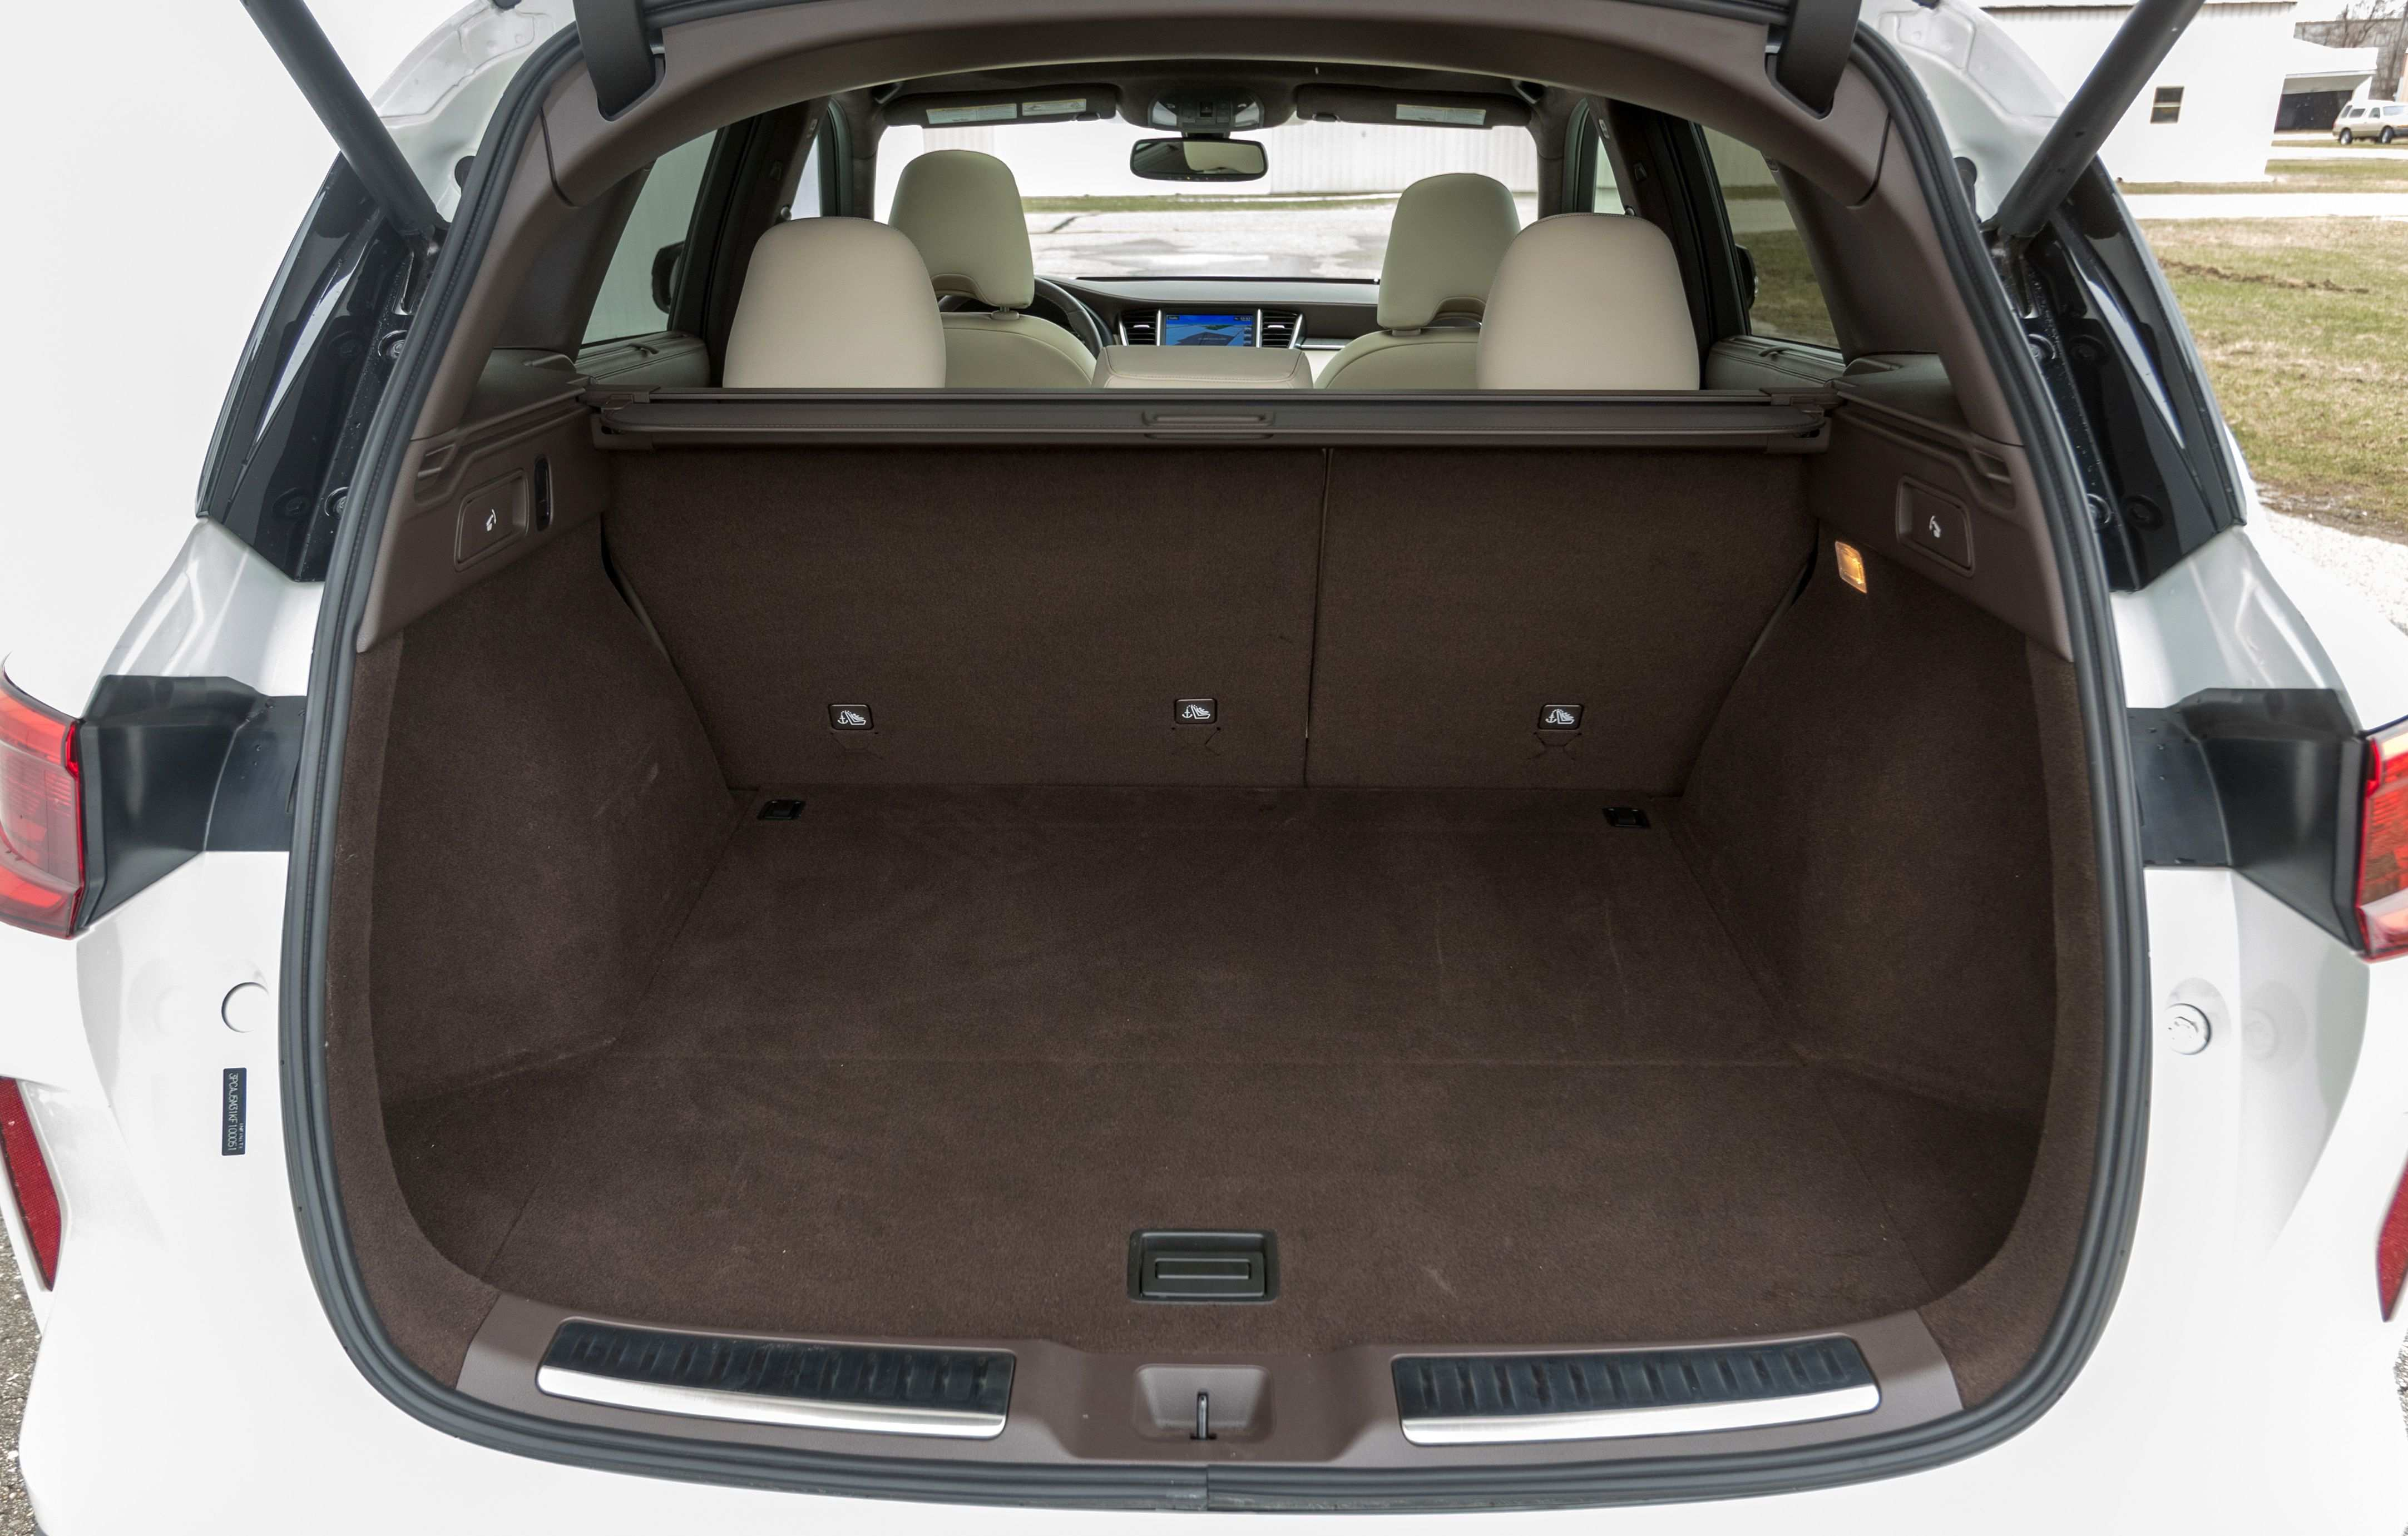 87 All New Best Infiniti Qx50 2019 Trunk Space Price Pricing with Best Infiniti Qx50 2019 Trunk Space Price